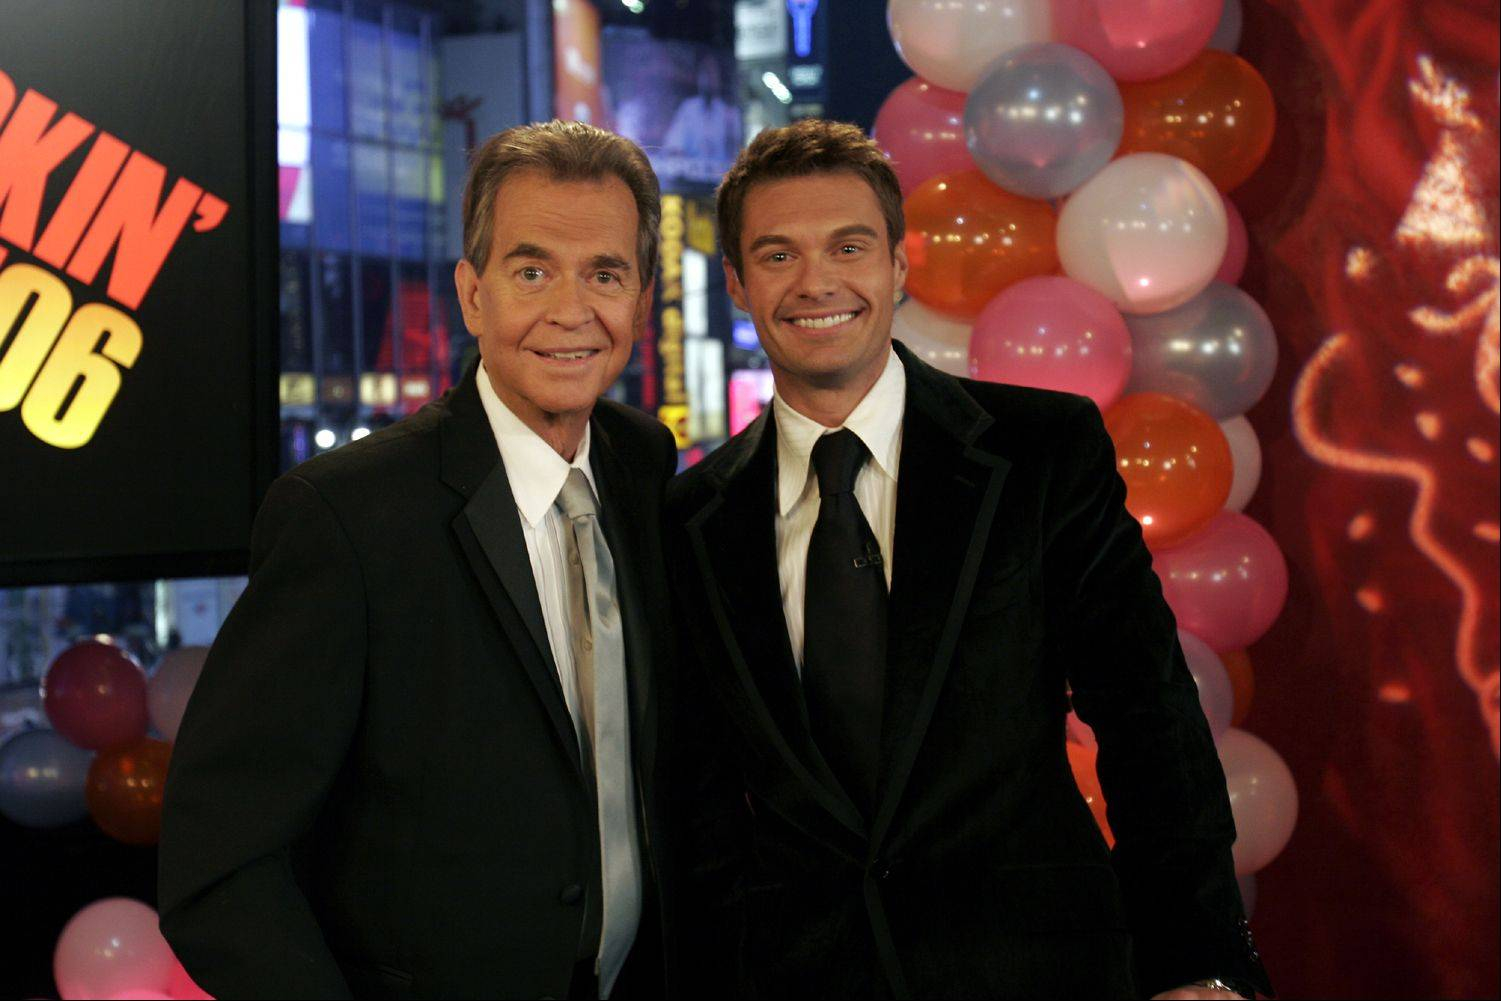 This photo provided by ABC Jan. 1, 2006 shows Dick Clark posing with Ryan Seacrest Saturday Dec. 31, 2006. Clark the personality who's been ringing in the New Year for decades making his first television appearance since a stroke in late 2004 Saturday Dec. 31, 2005 during ABC's broadcast of the festivities in New York's Times Square to ring in the New Year 2006.